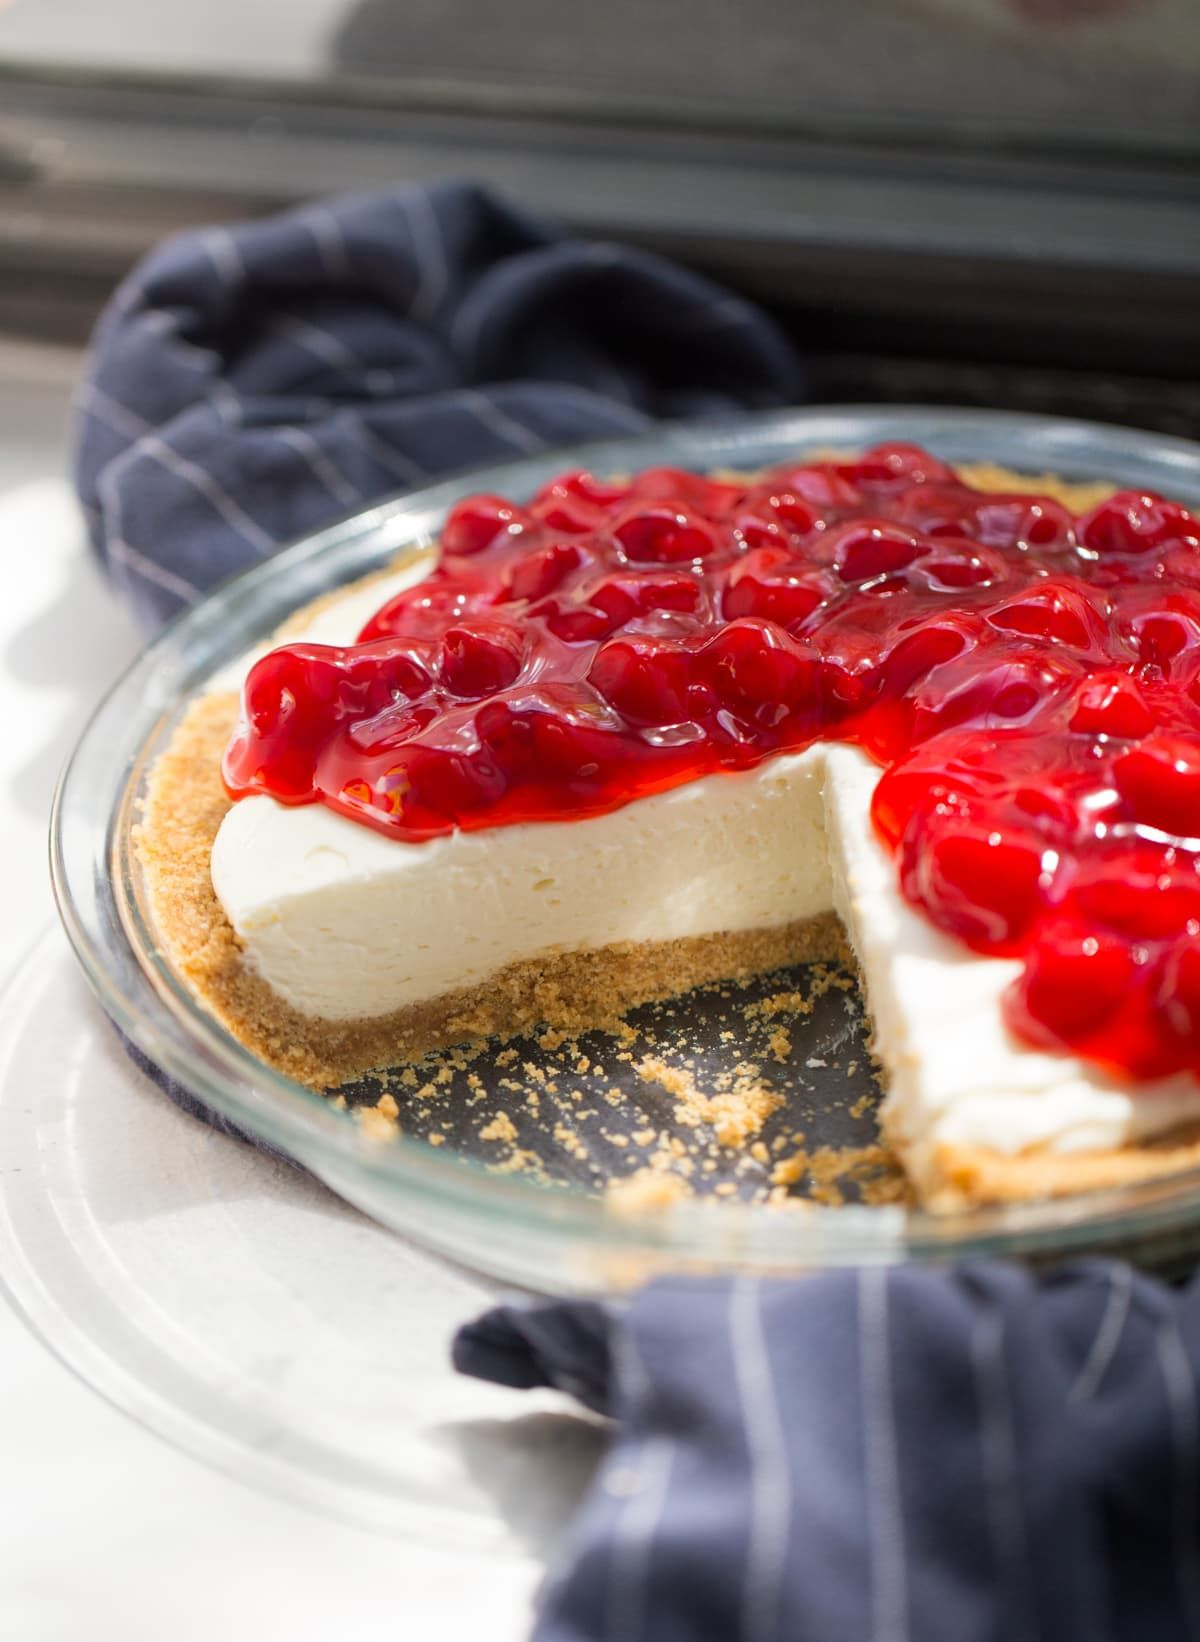 Amazing No Bake Cheesecake Recipe | Lauren's Latest